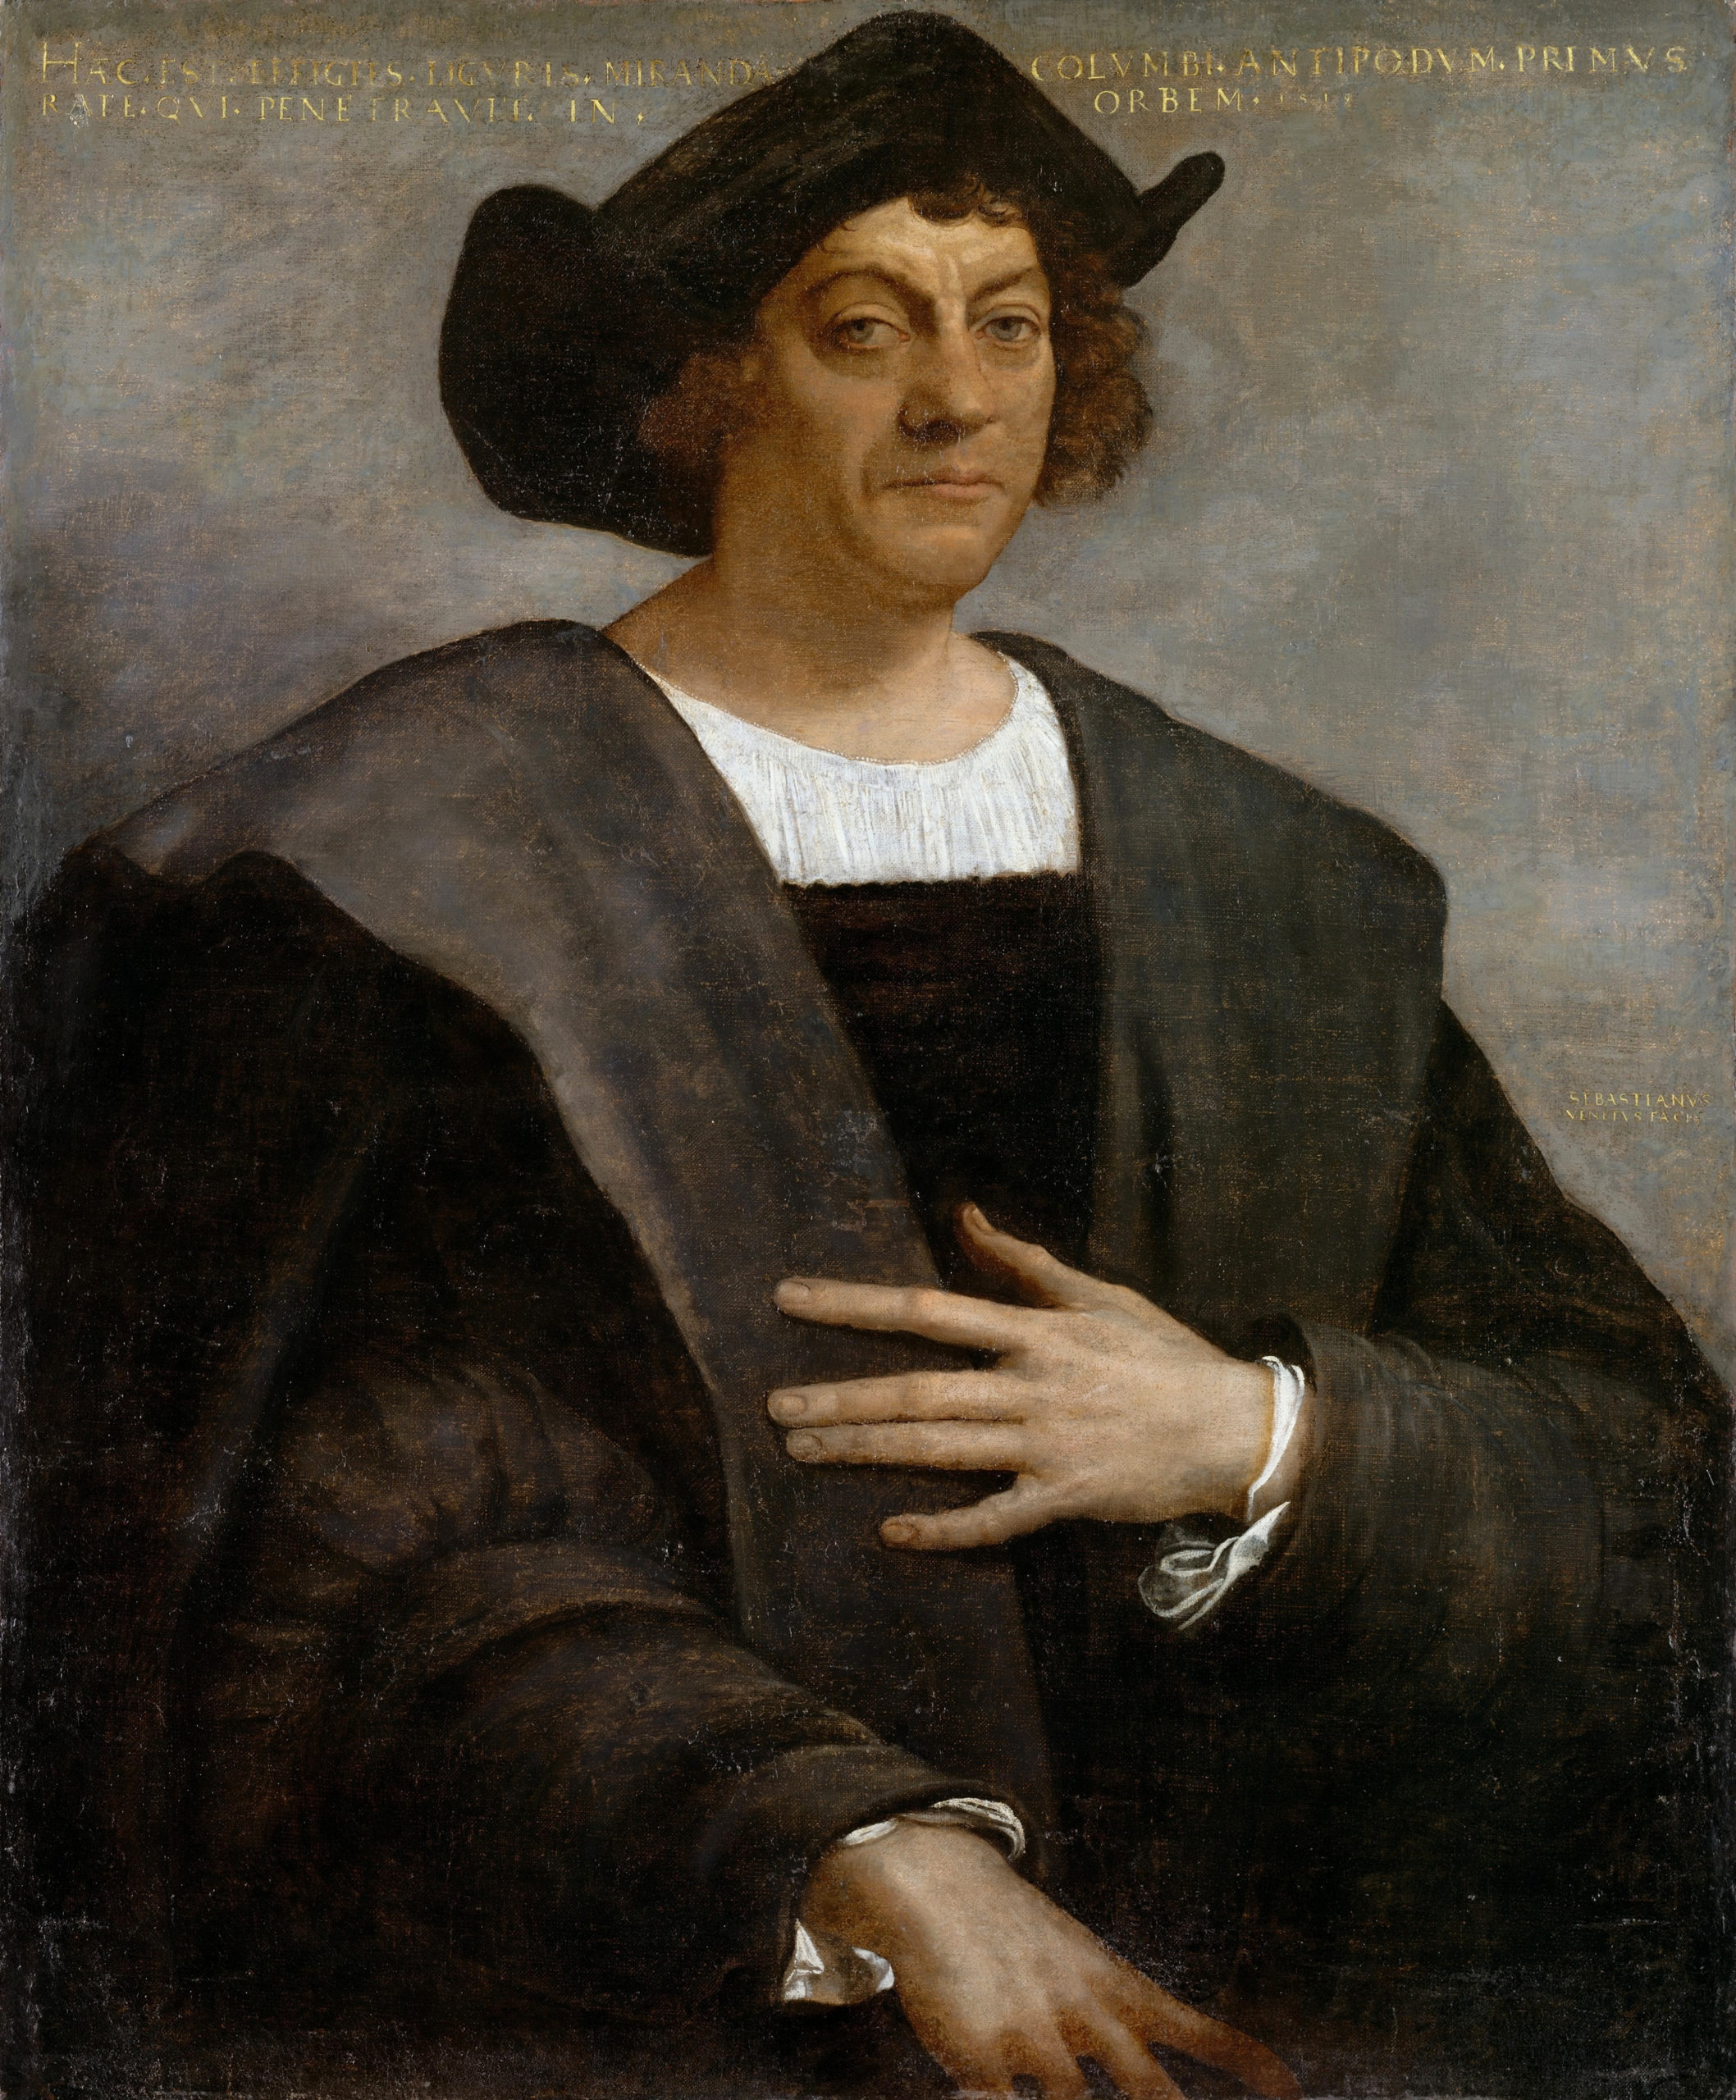 A posthumous portrait of a man said to be Christopher Columbus by artist Sebastiano del Piombo in 1519.